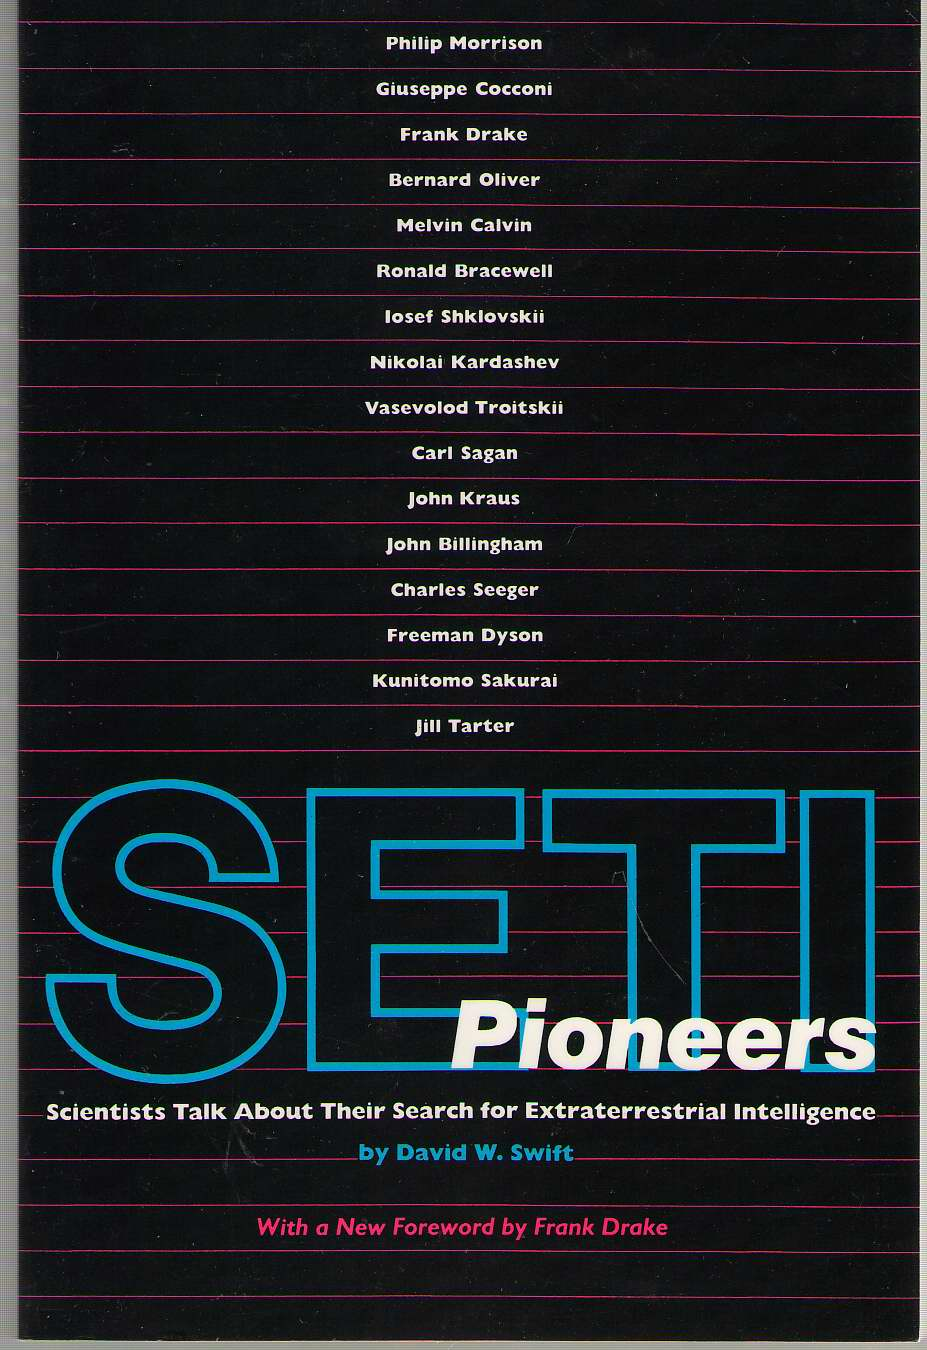 Seti Pioneers Scientists Talk about Their Search for Extraterrestrial Intelligence, Swift, David W.